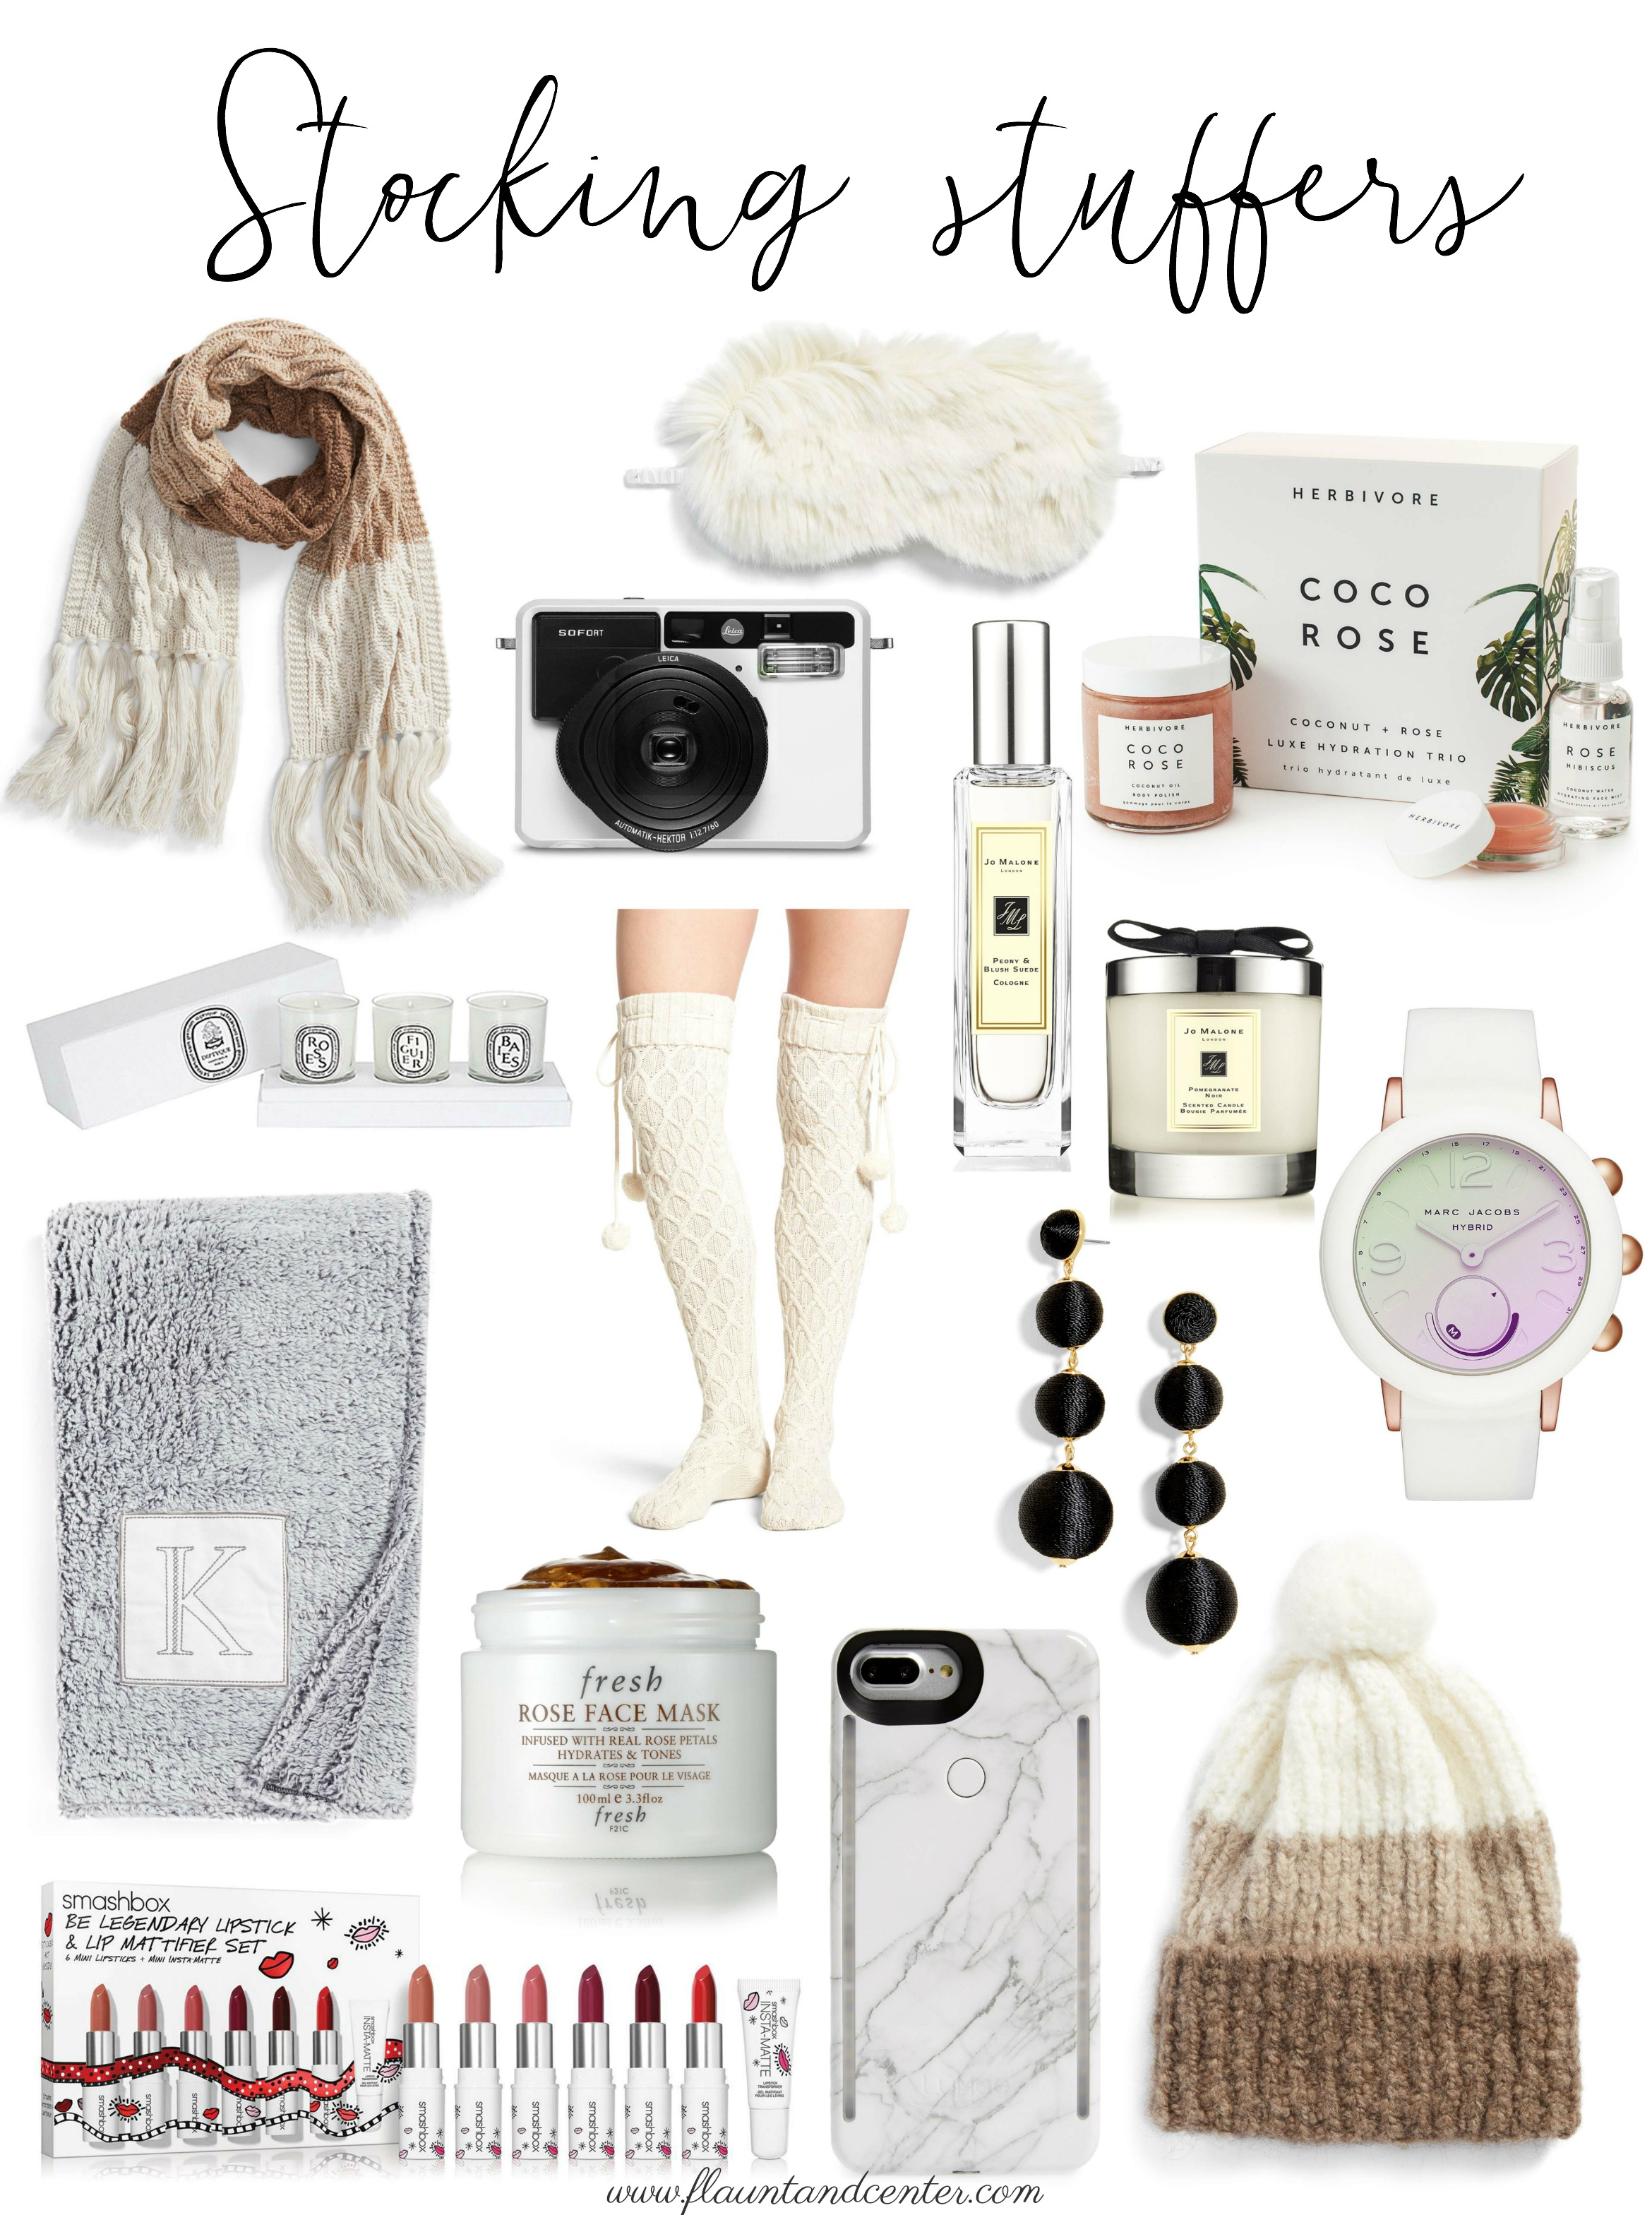 Stocking Stuffers |Scarf | Sofort Instant Camera | Faux Fur Sleep Mask | Coco Rose Lux Hydration Trio | Jo Malone Cologne | Jo Malone Candle | Votive Candle Set | Cable Knit Over the Knee Socks | Marc Jacobs Riley Hybrid Smartwatch | Monogram Throw Blanket | Fresh Rose Face Mask | Ball Shoulder Duster Earrings | iPhone Lighted Case | Lipstick Set | Tricolor Pom Beanie |